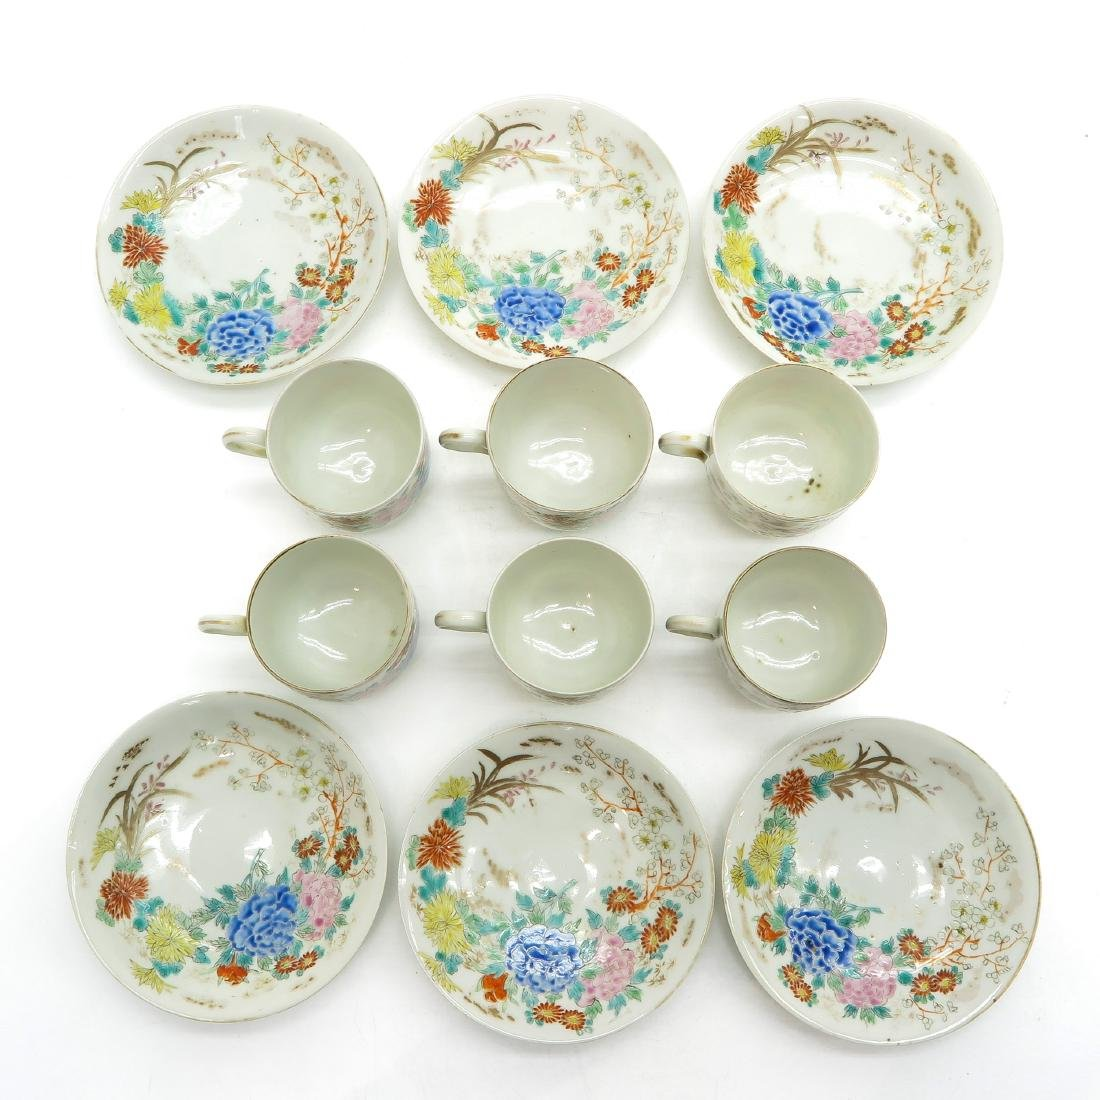 Lot of 6 Cups and Saucers - 4